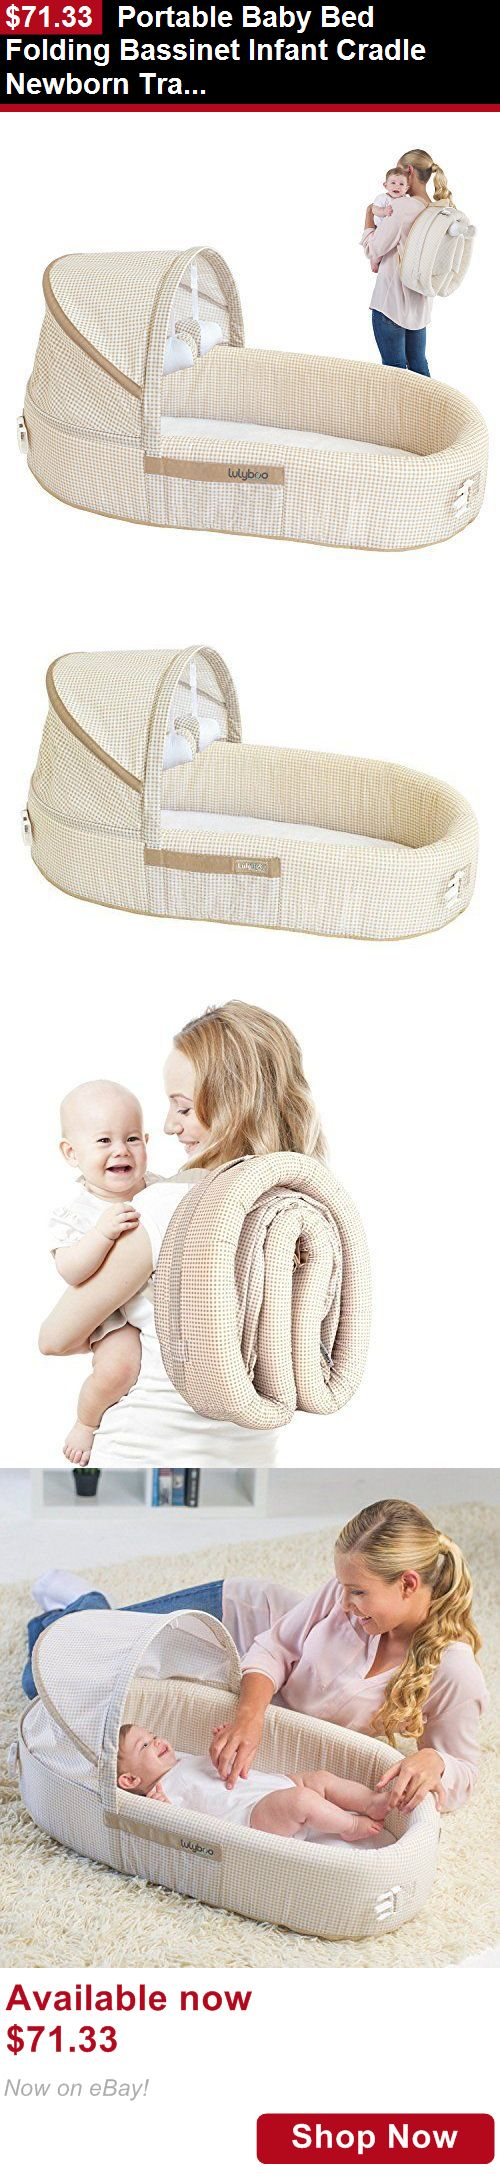 Bassinets And Cradles: Portable Baby Bed Folding Bassinet Infant Cradle Newborn Travel Sleeper Backpack BUY IT NOW ONLY: $71.33